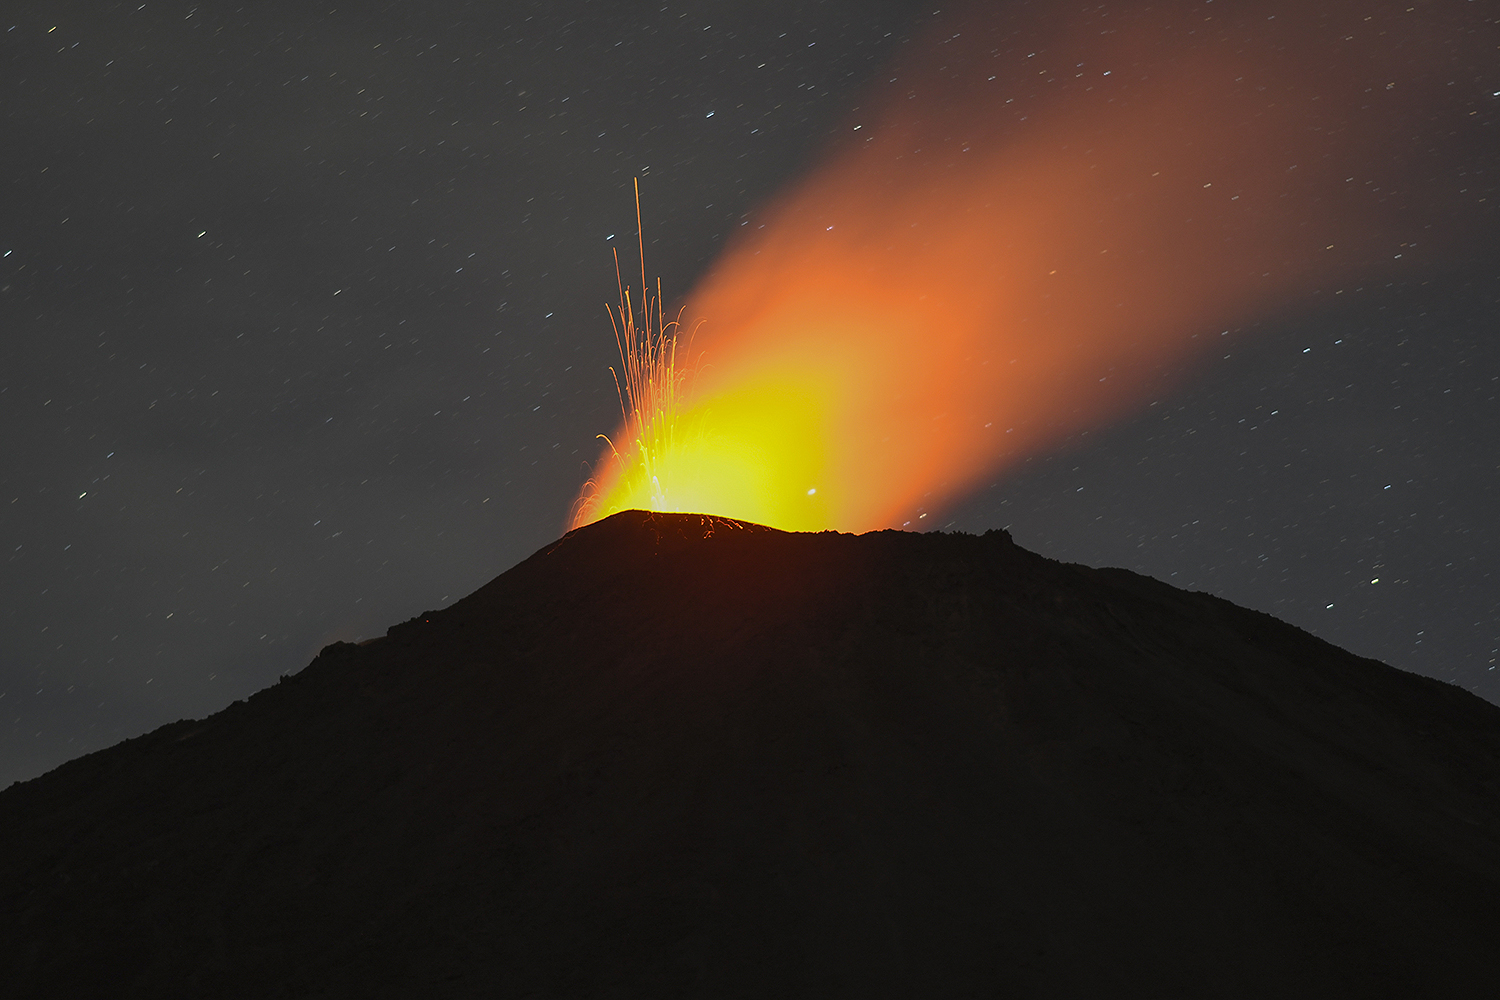 The Pacaya volcano, seen from Cerro Chino in San Vicente Pacaya, Guatemala, erupts July 25. JOHAN ORDONEZ/AFP via Getty Images